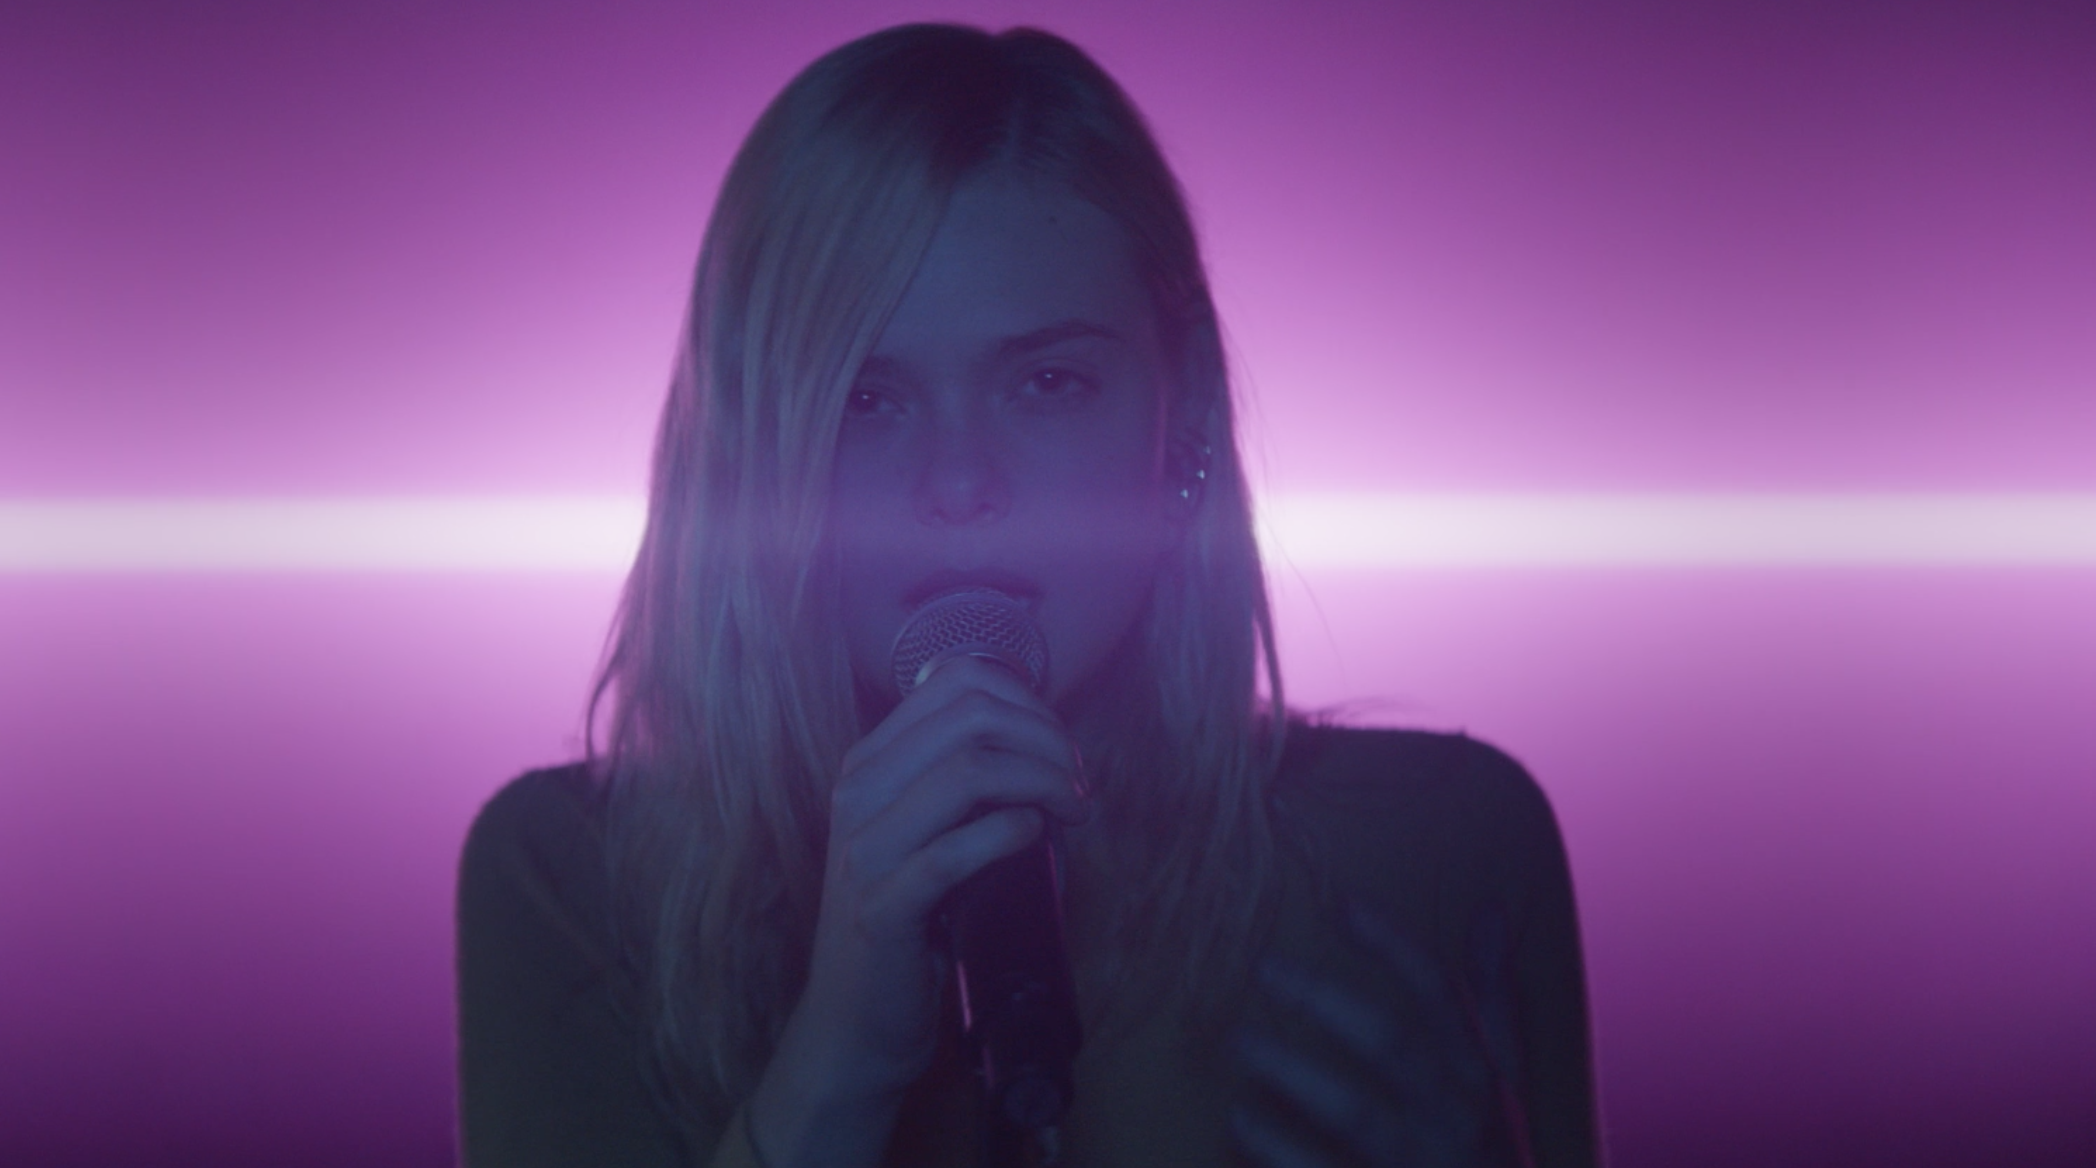 See Elle Fanning Cover Robyn in 'Teen Spirit' Trailer